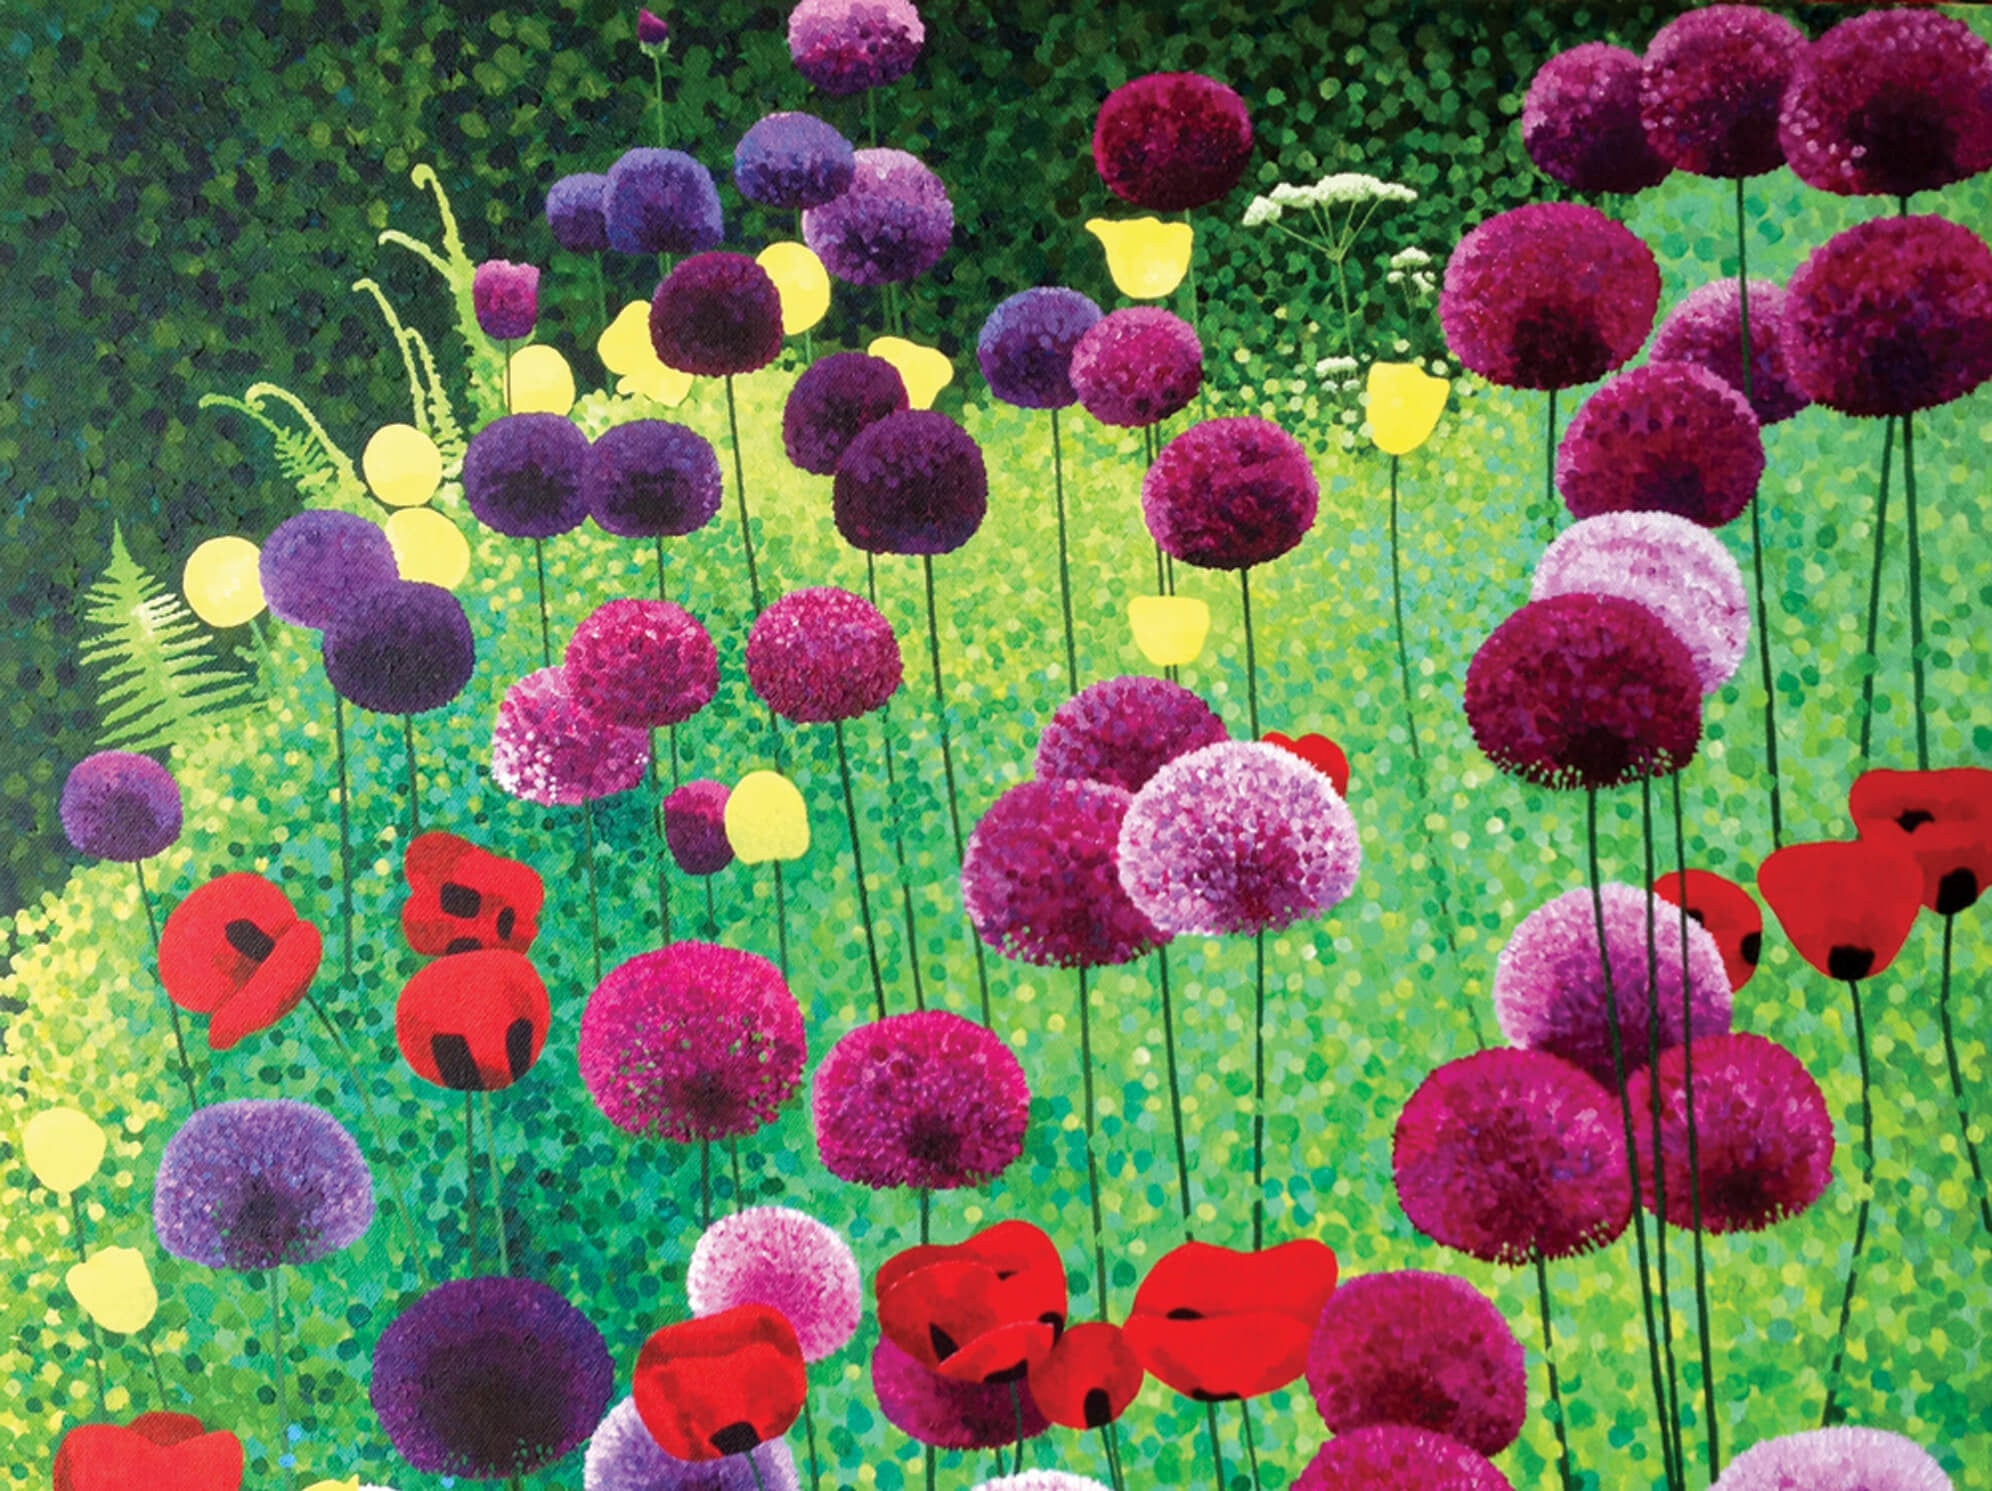 Alliums & Poppies